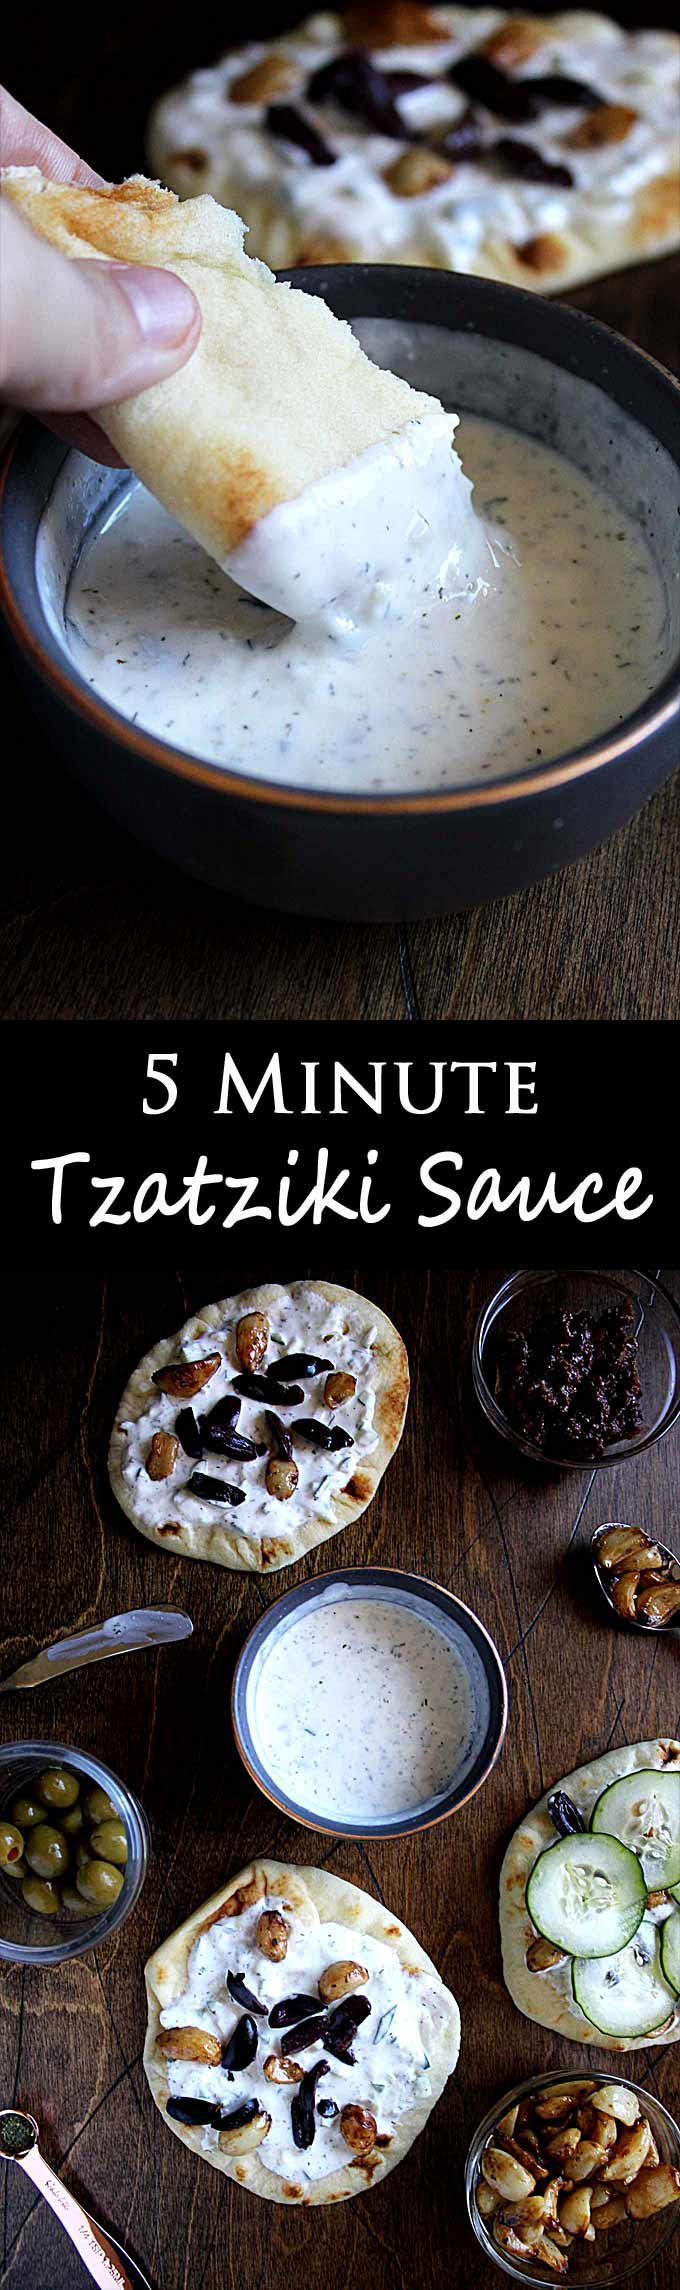 5 Minute Tzatziki Sauce | Greek Tzatziki Recipe | Cucumber | Dill | Easy | Gyros